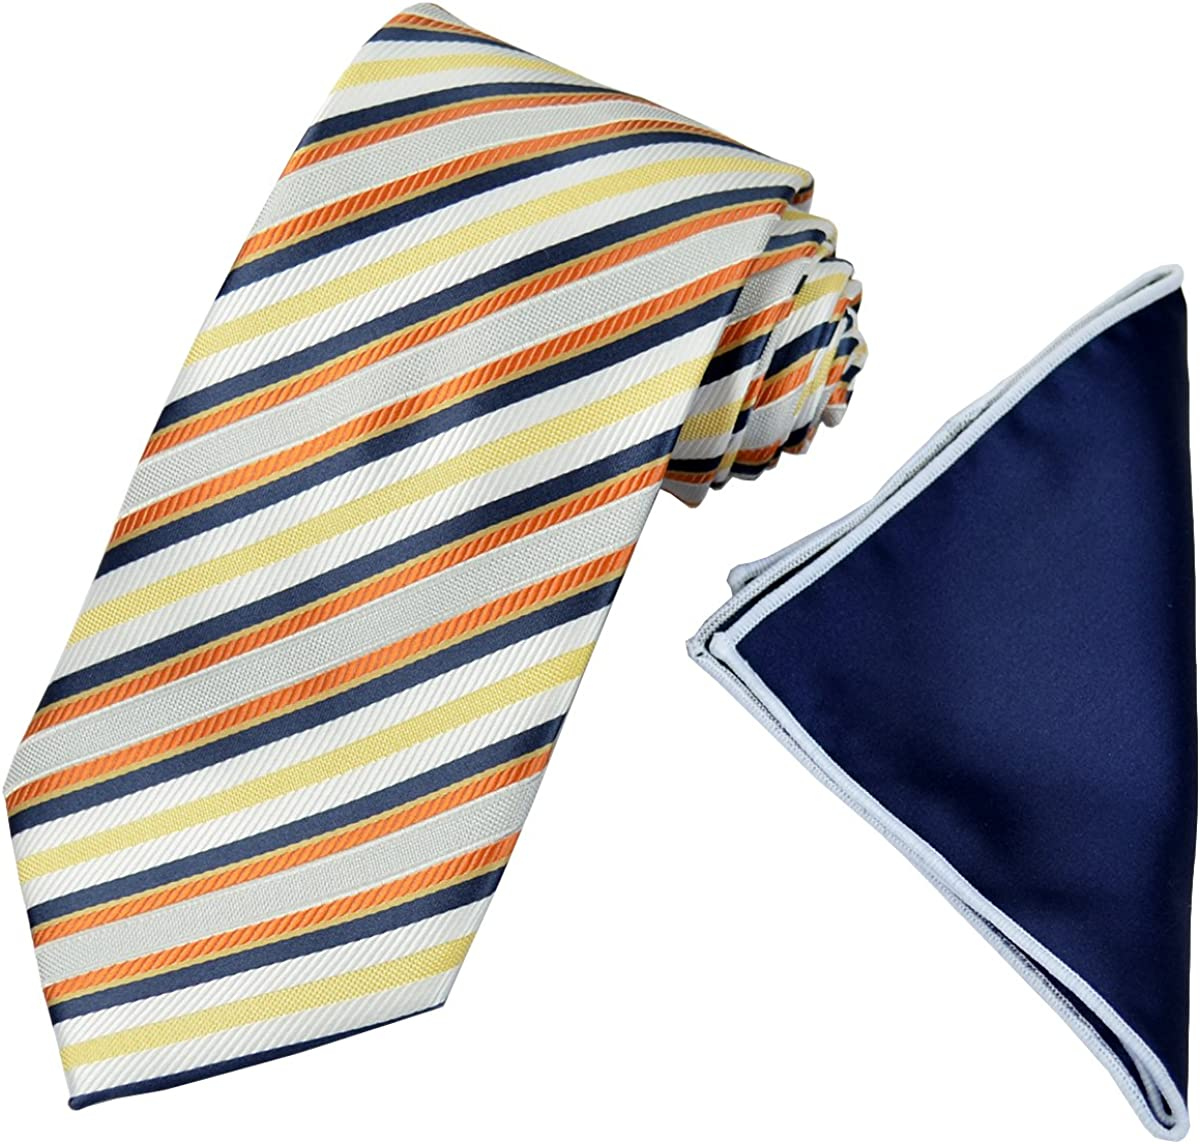 Striped Yellow and Blue Men's Tie with Contrast Pocket Square Set